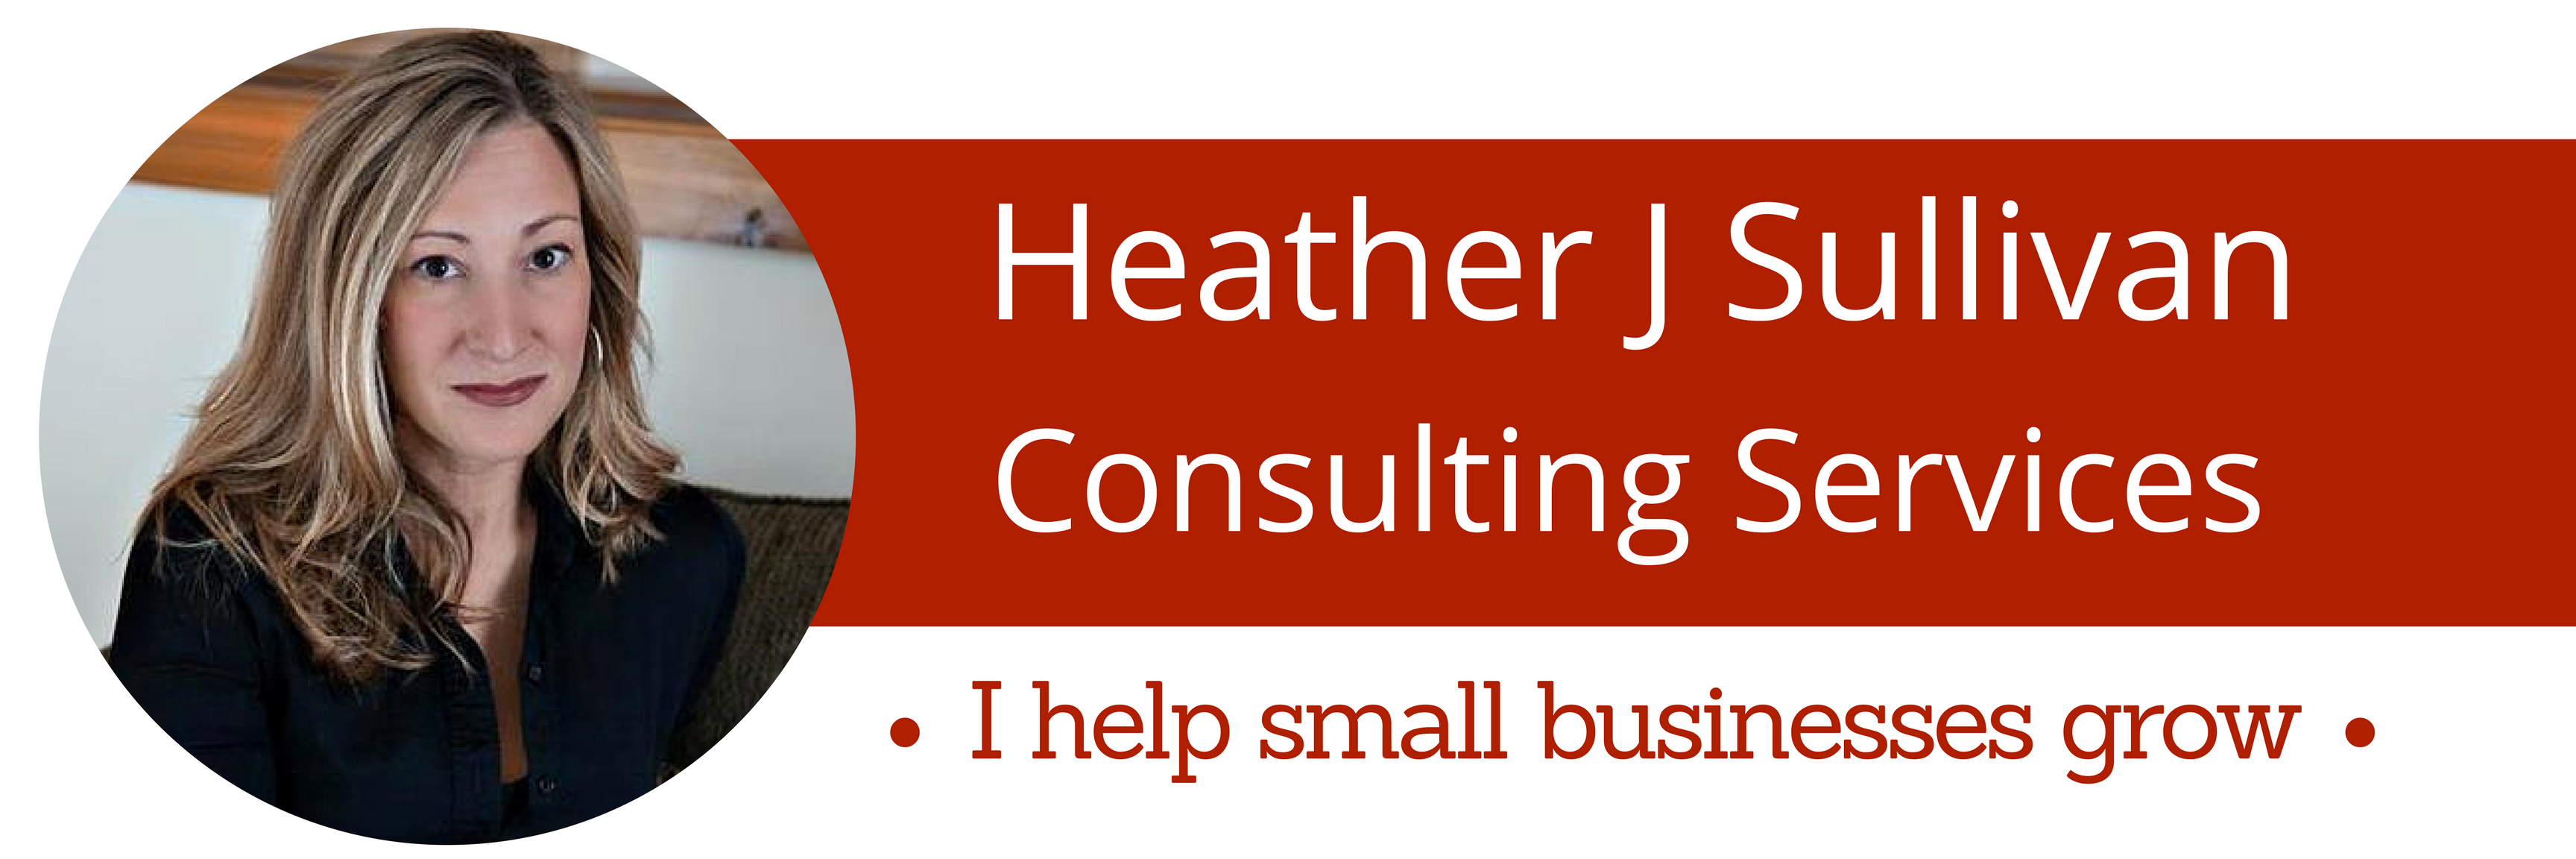 Heather J Sullivan Consulting Services